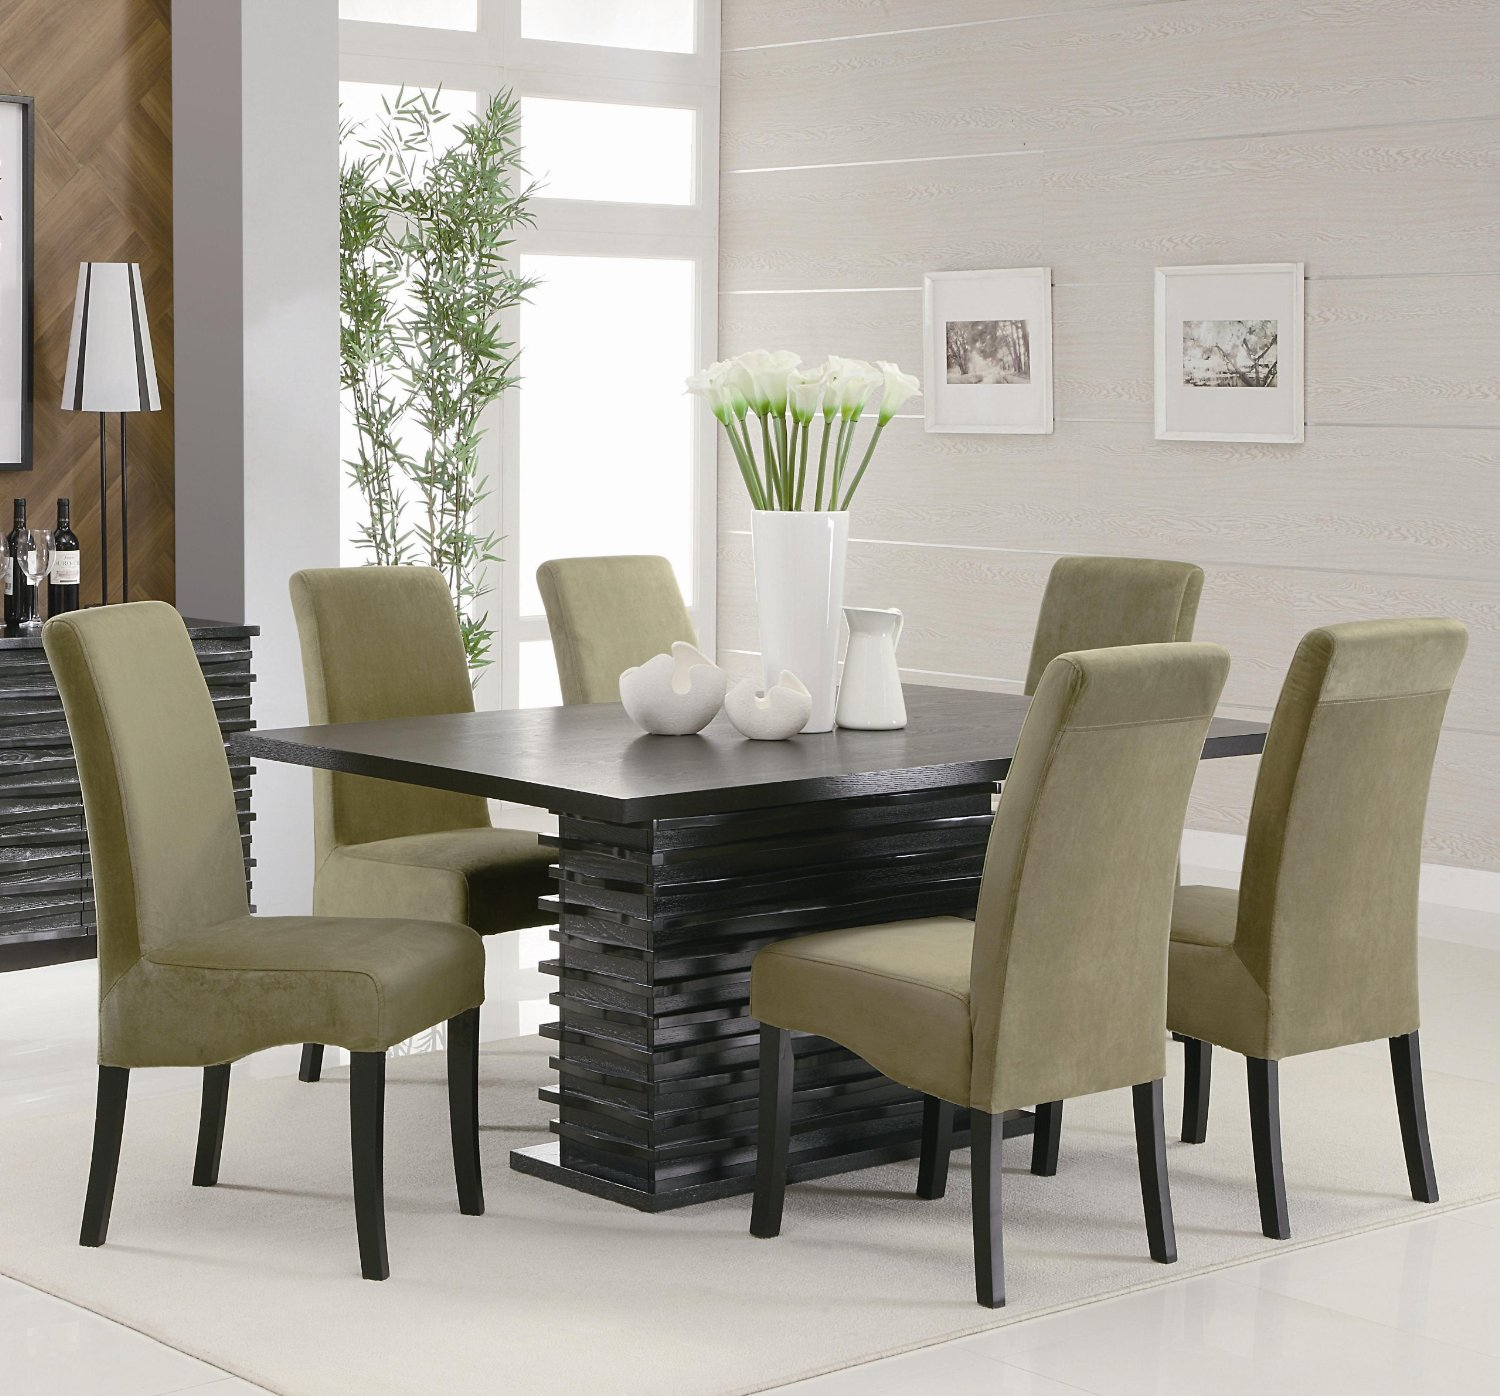 Dining Room Table And Chairs Dining Room Table And Chairs Ideas With Images